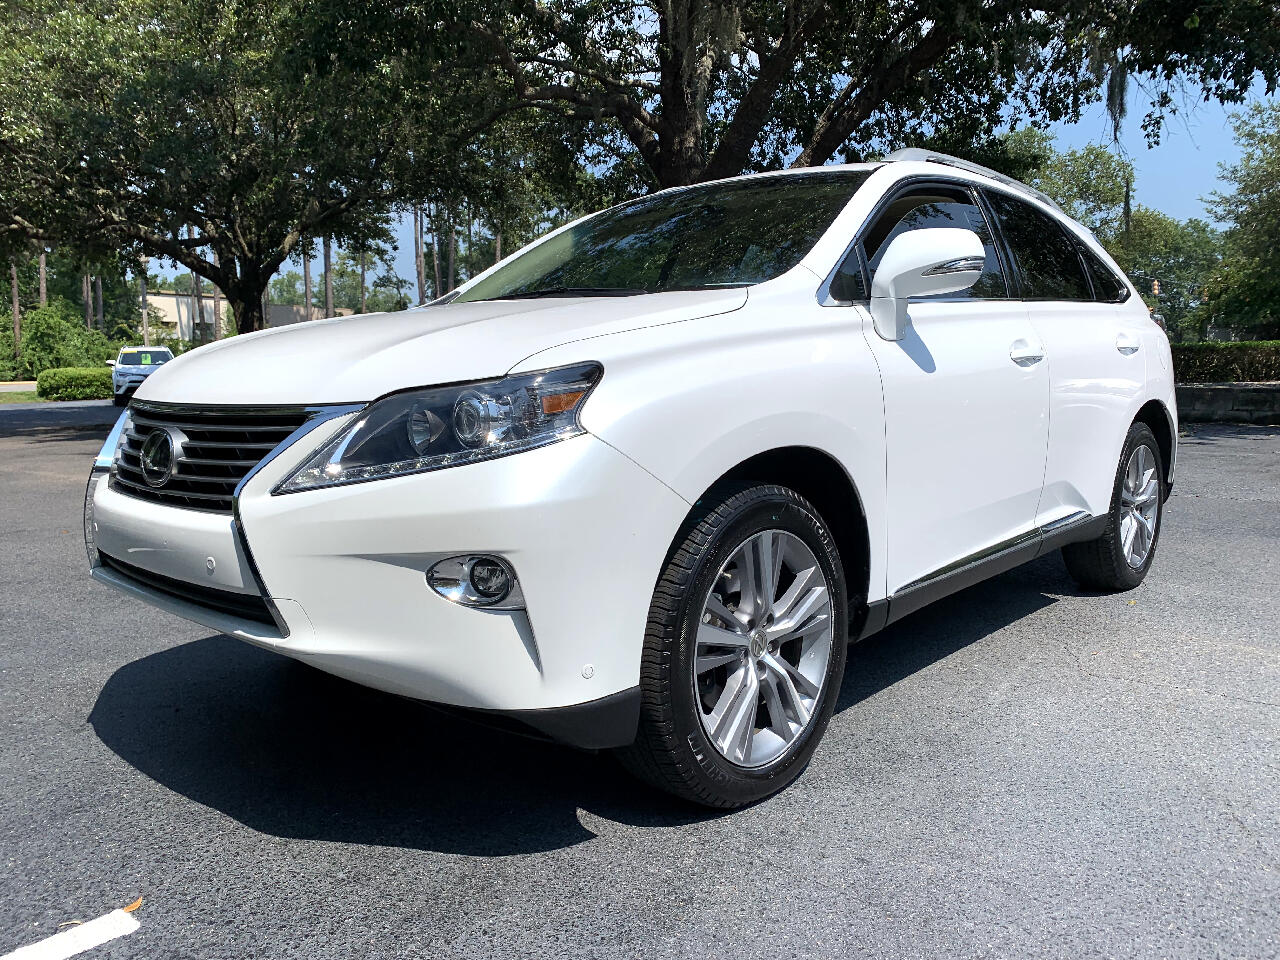 Used 2015 Lexus RX 350 FWD 4dr for Sale in Bluffton SC 29910